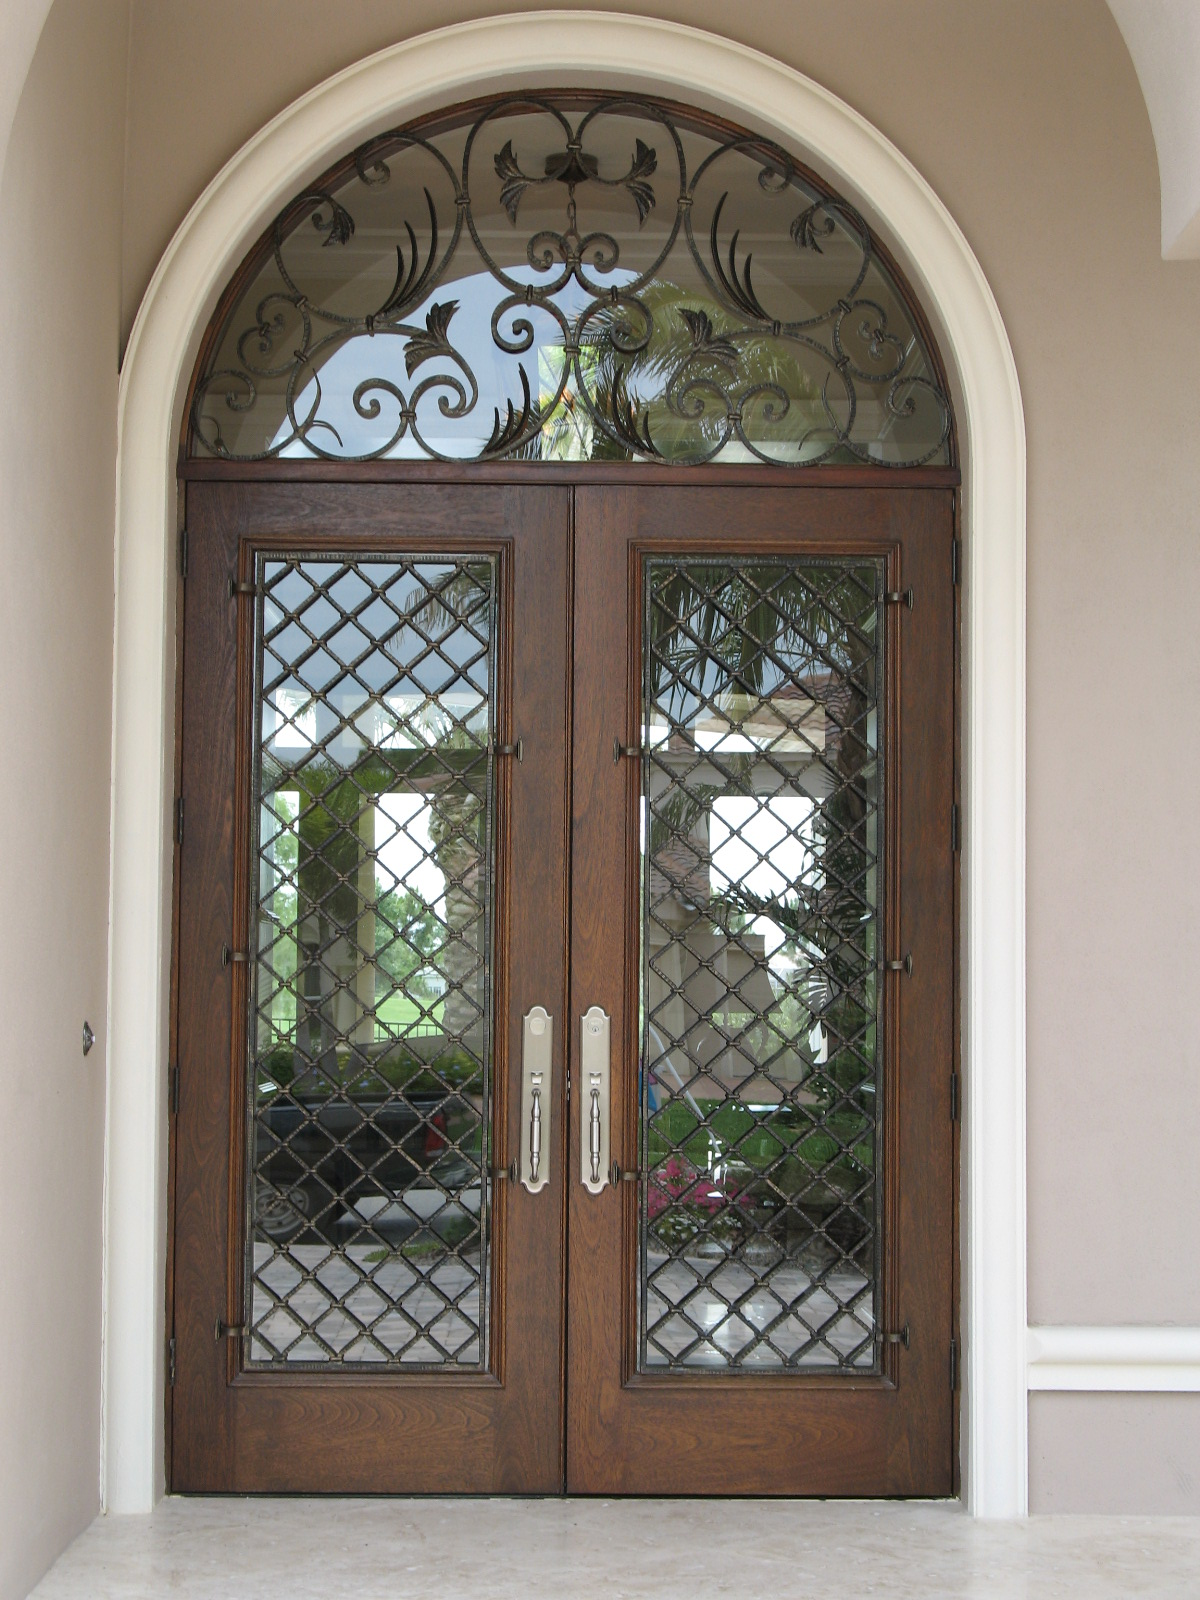 1600 #4C6A7F Solid French Doors Interior Solid Wood Doors Interior save image Solid Exterior Doors 39071200